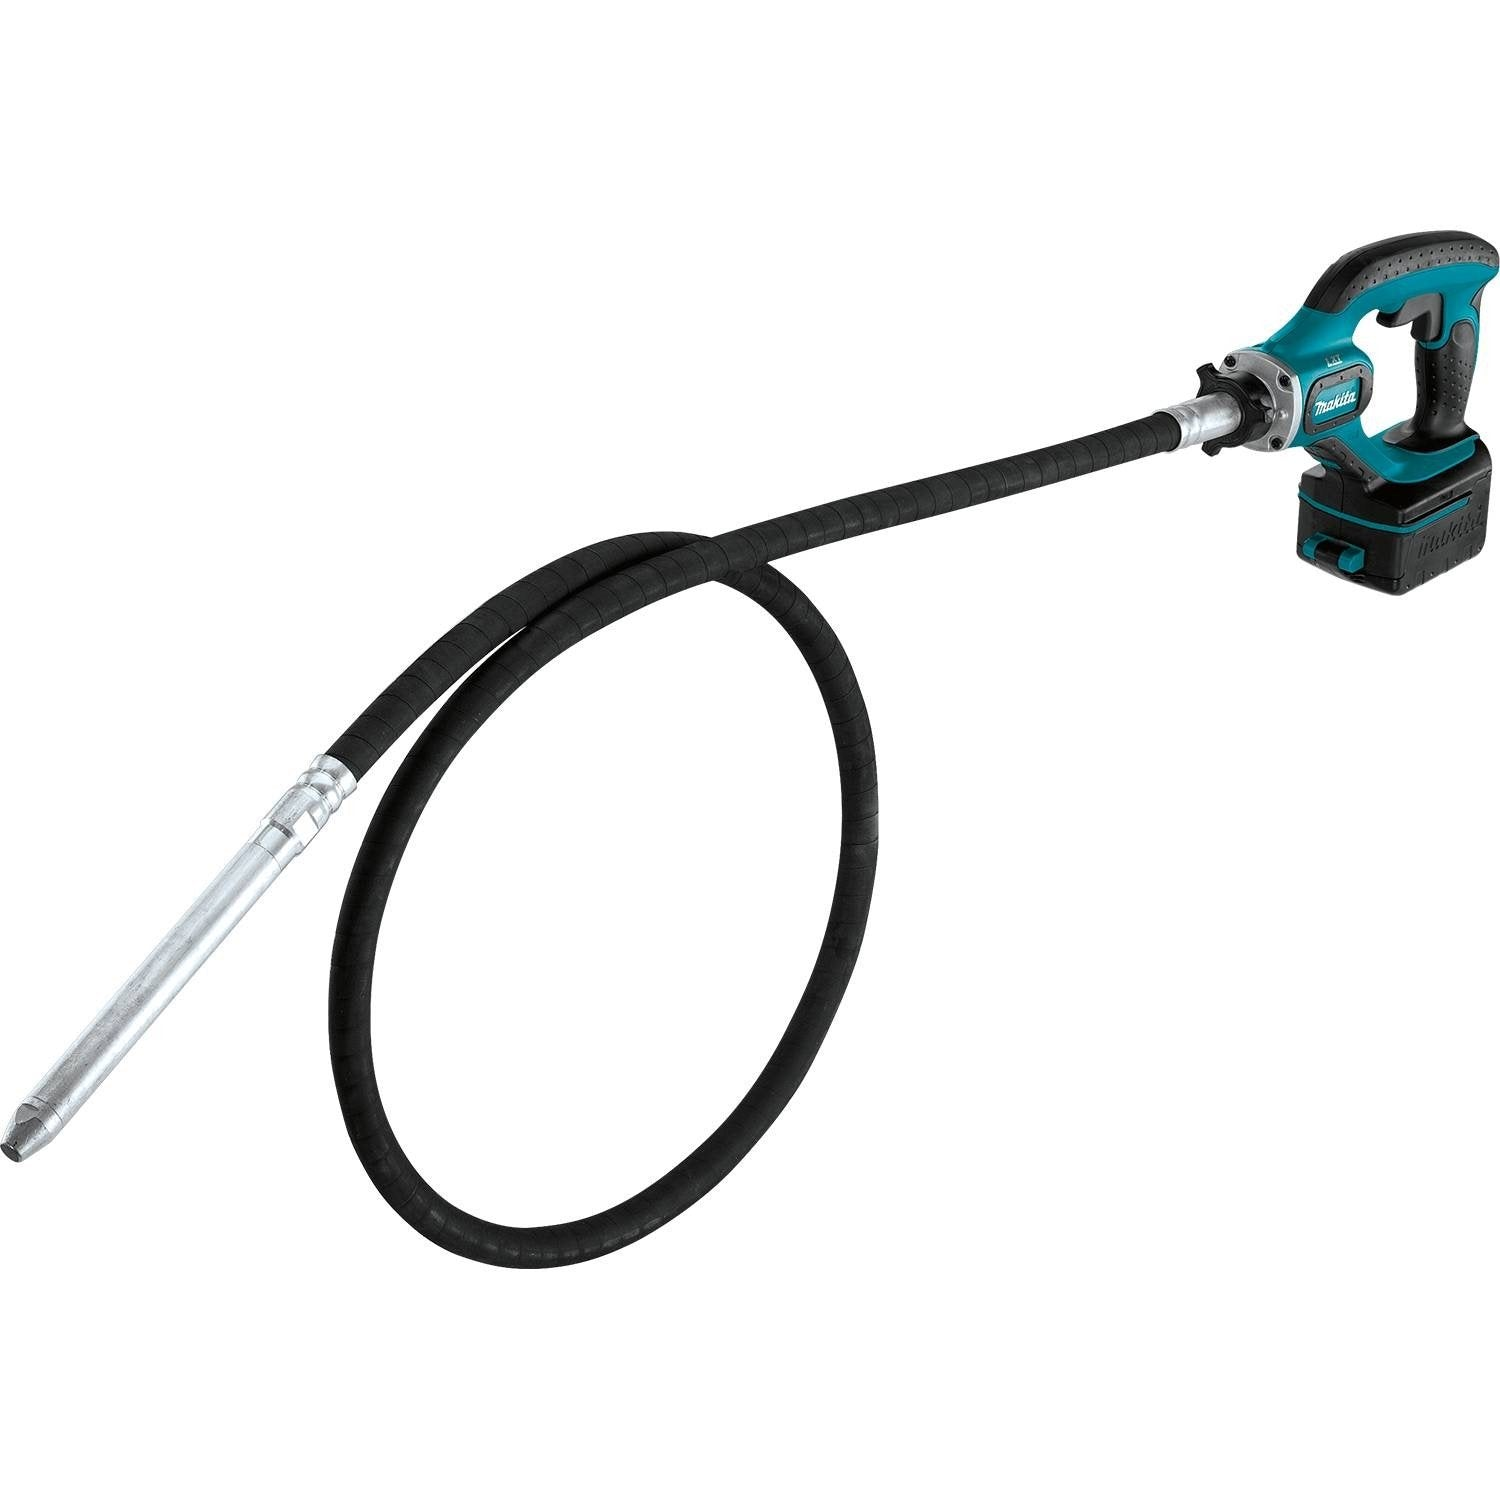 Makita XRV02T 5.0 Ah 18V LXT Lithium-Ion Cordless Concrete Vibra Kit, 8'